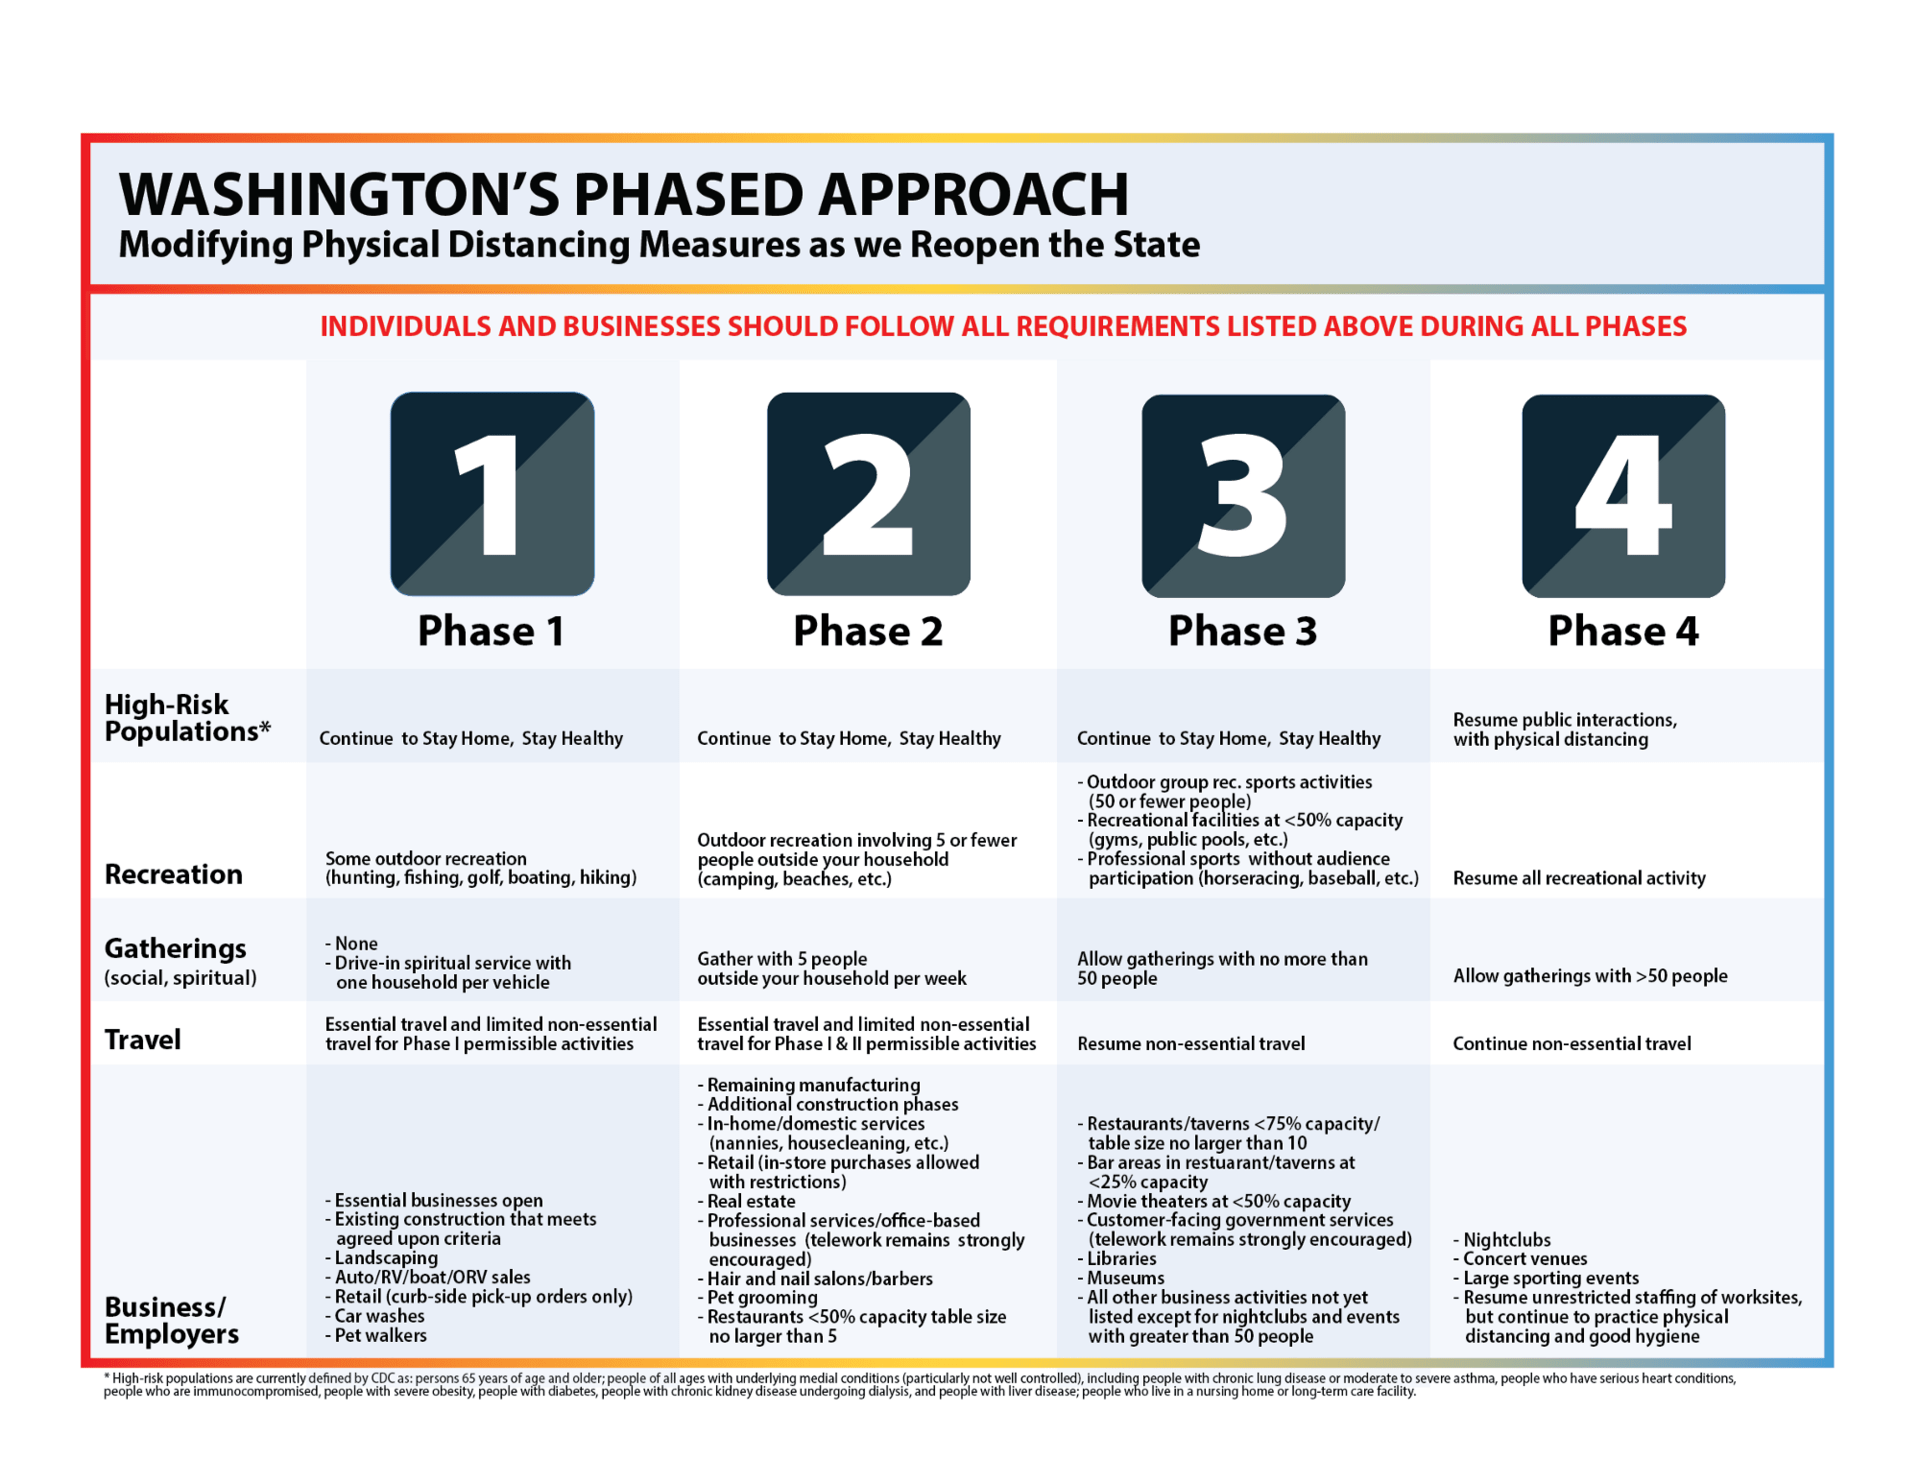 Washington Phased Approach